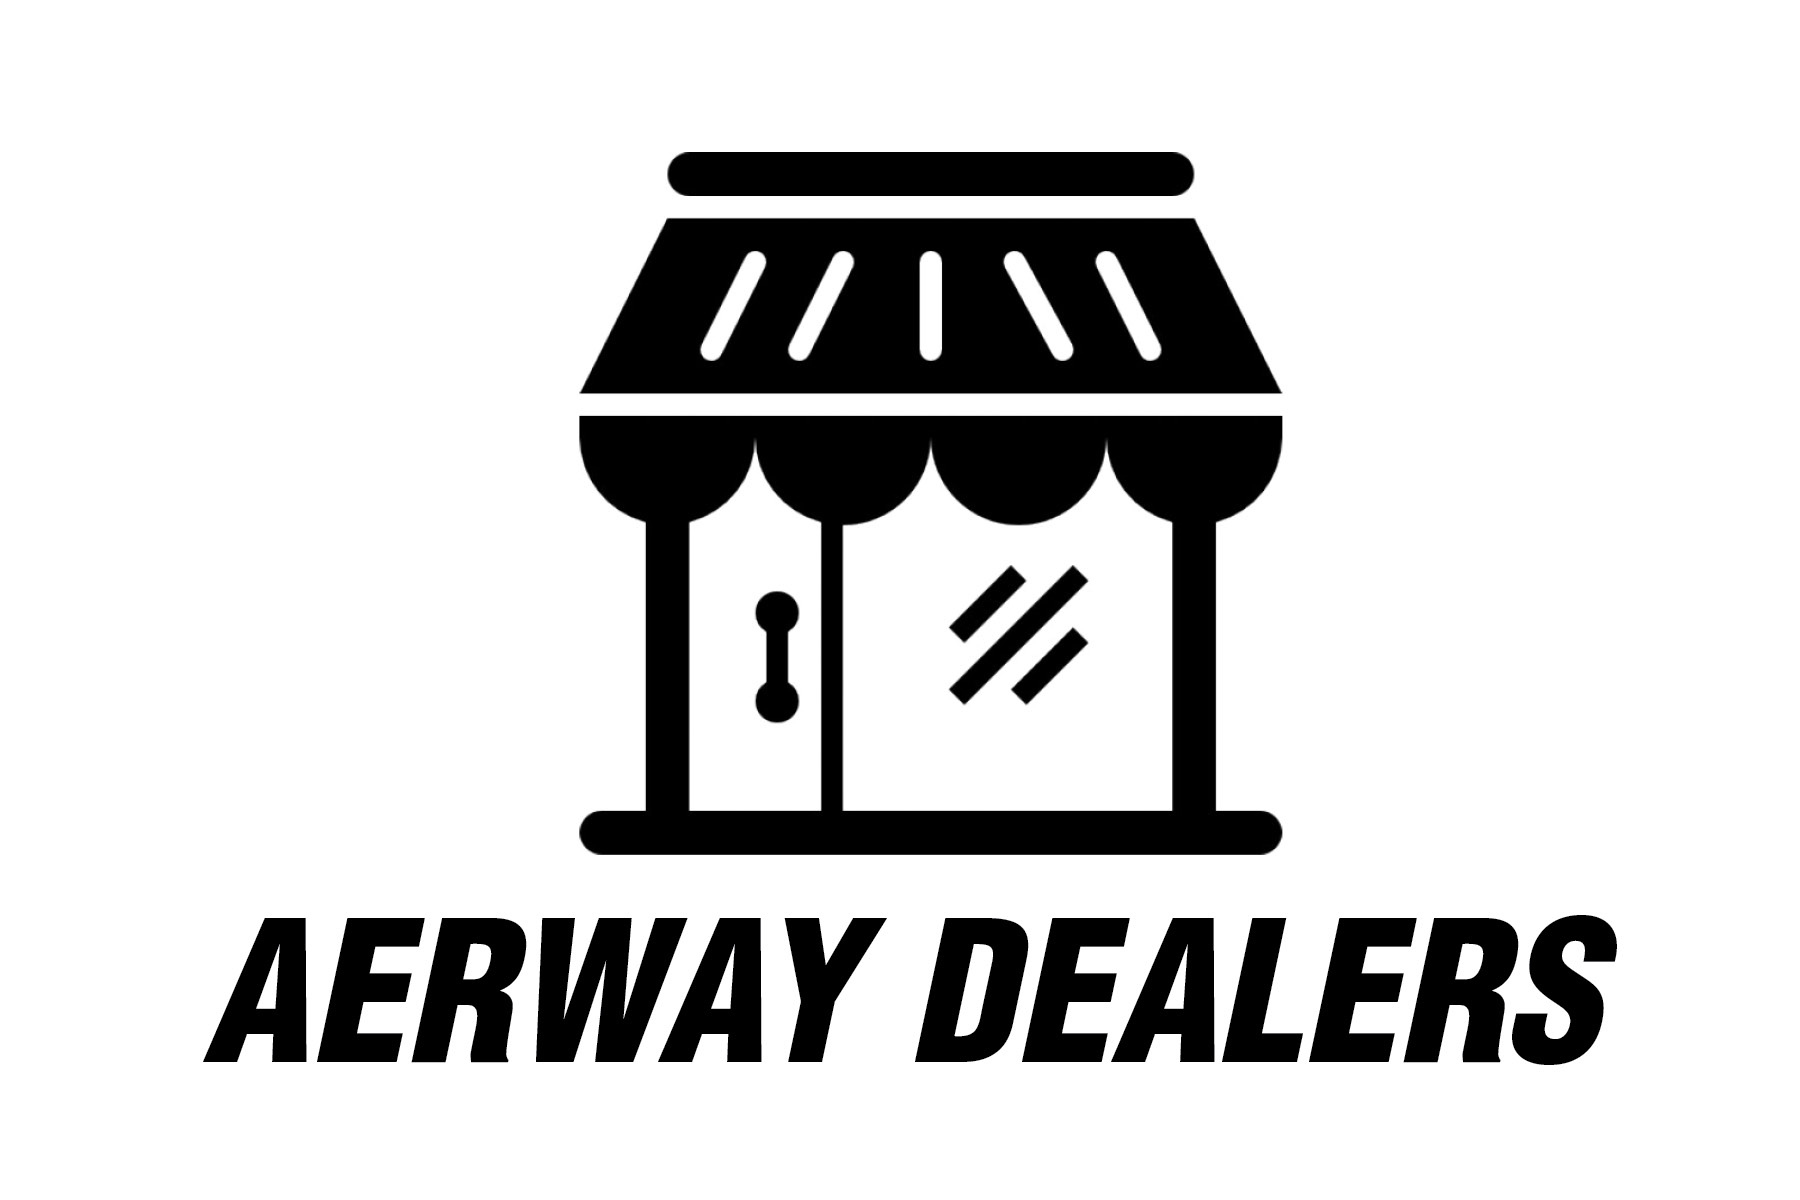 AERWAY DEALERS.jpg